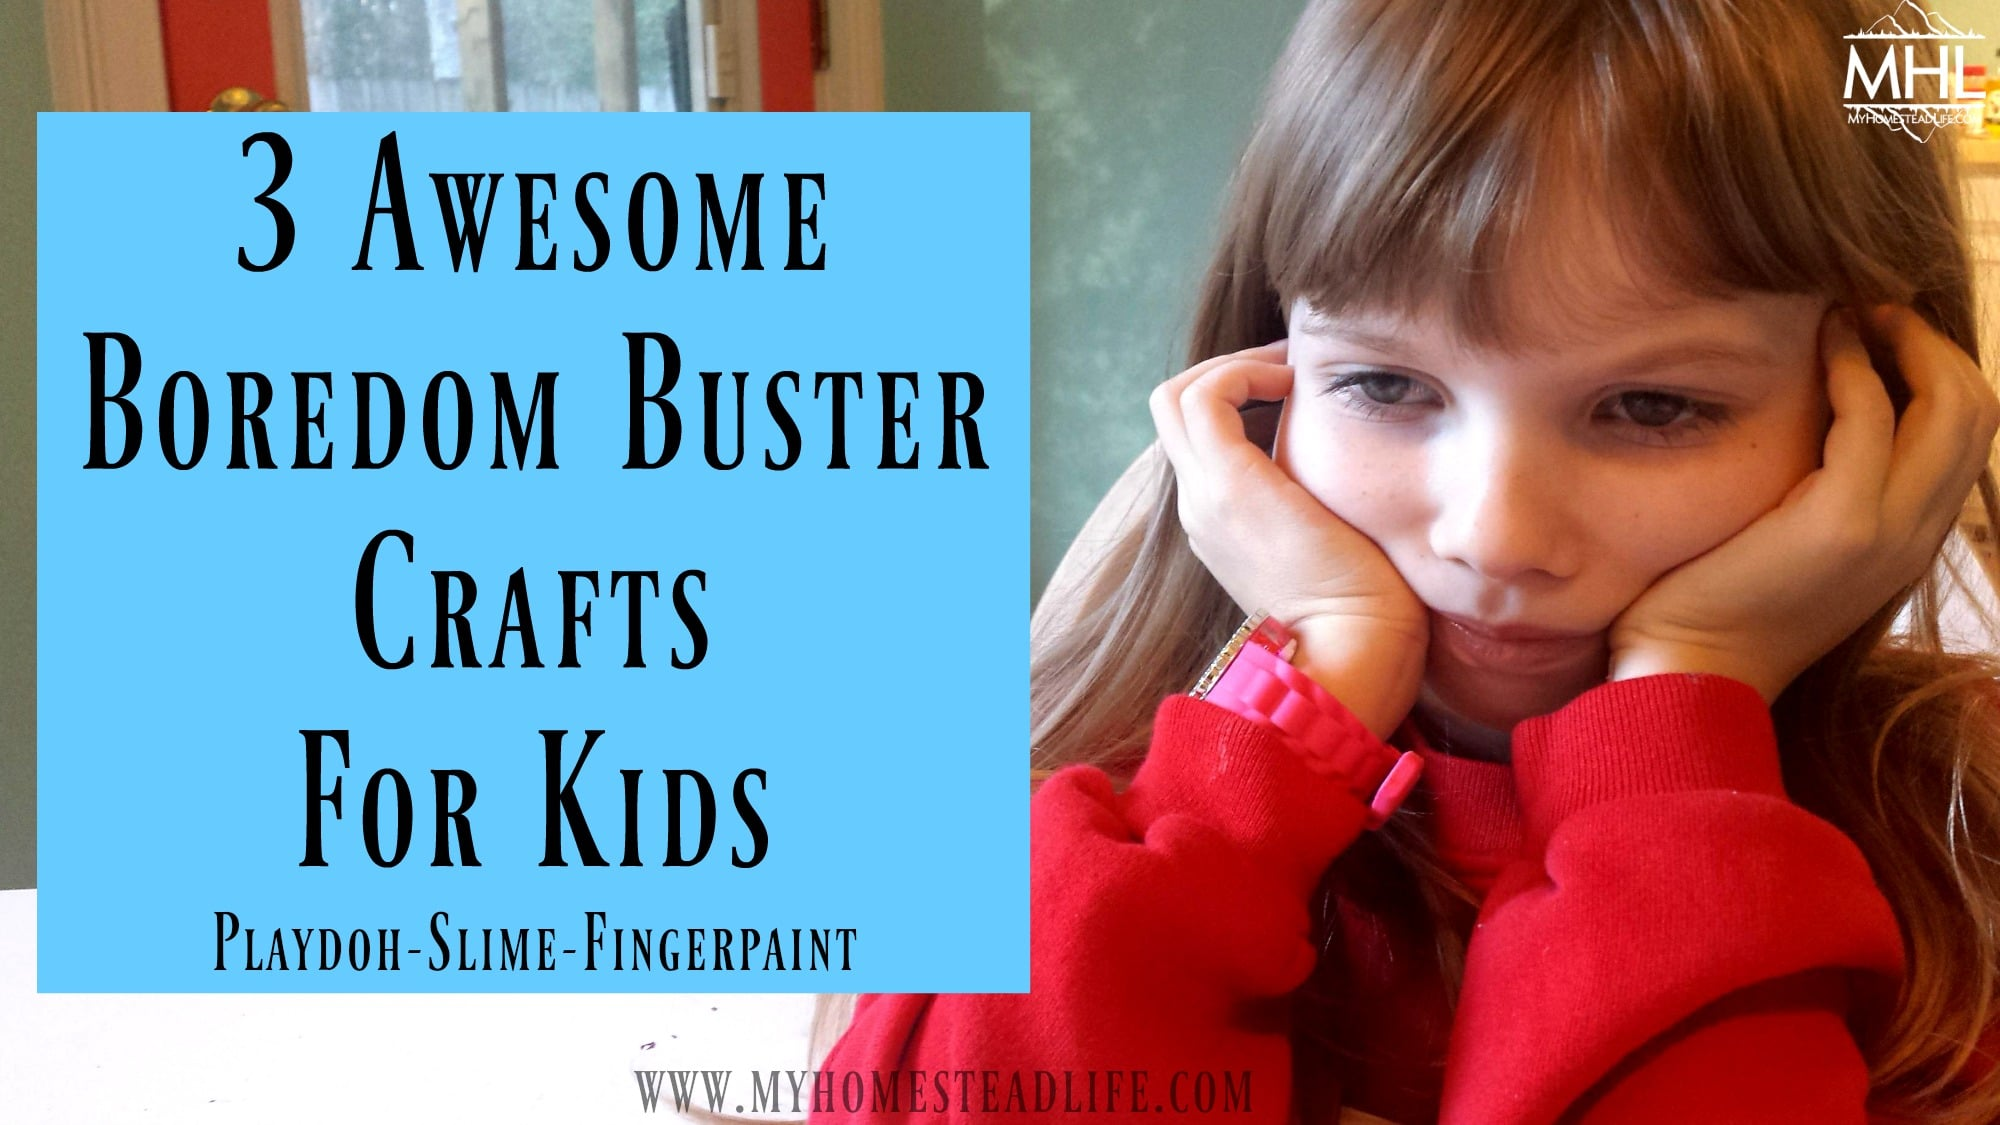 3 Awesome Boredom Buster Crafts for Kids